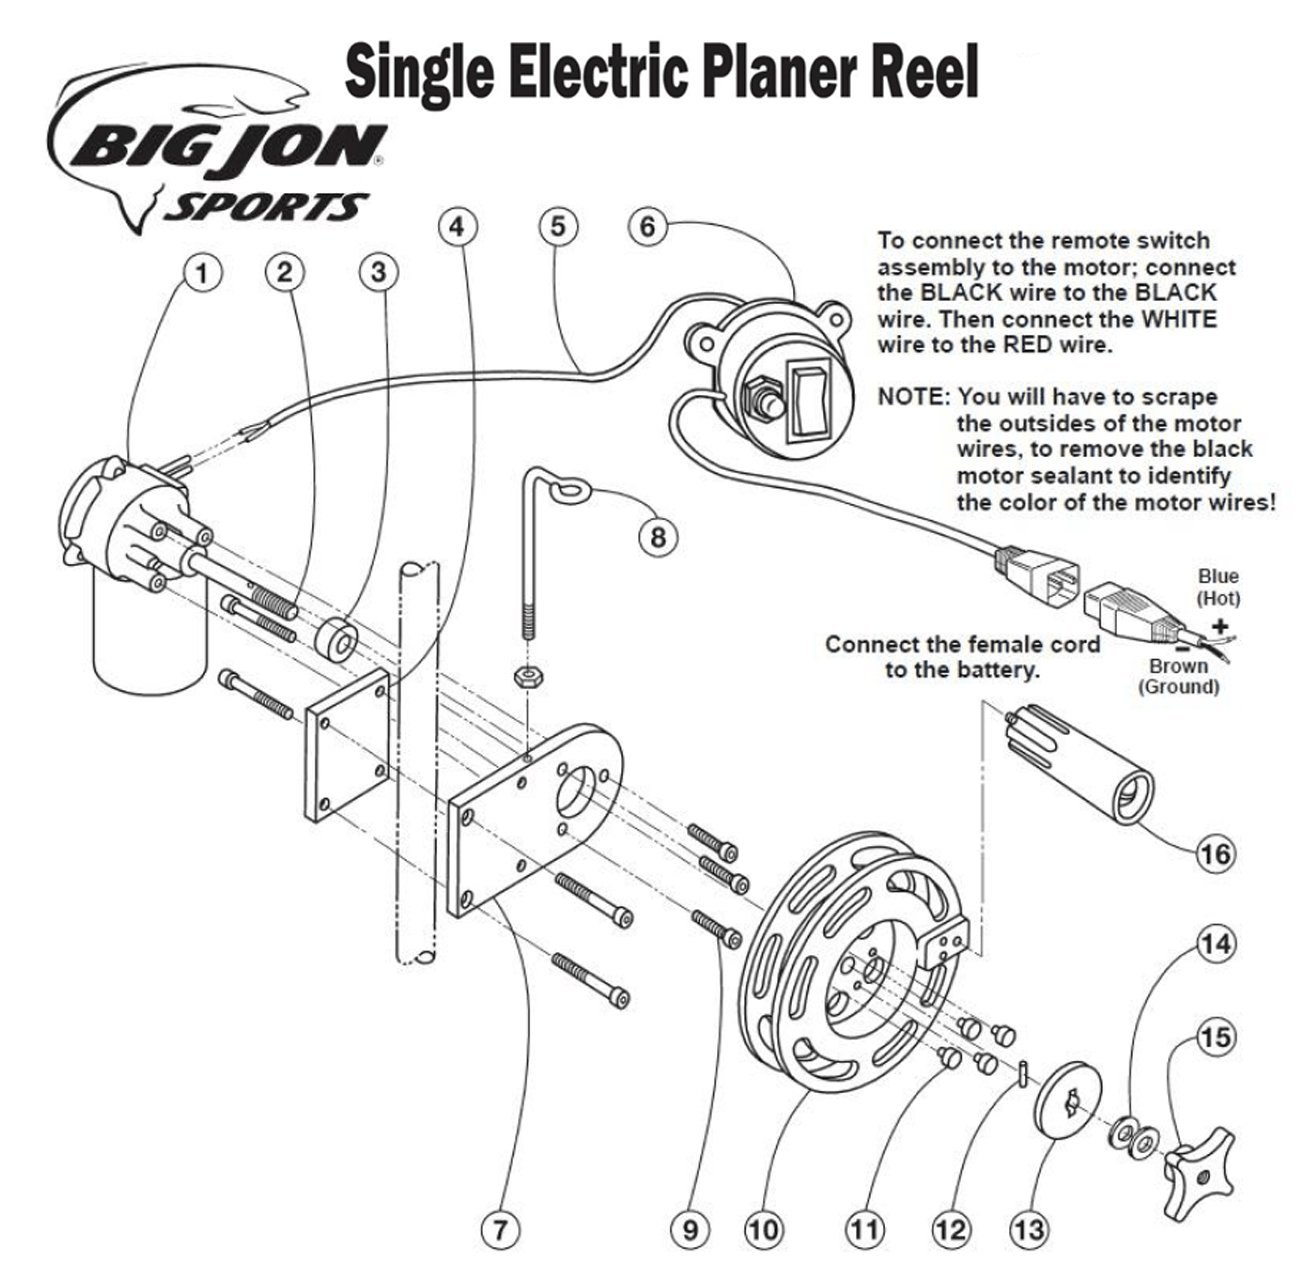 Order Big Jon Single Electric Planer Reel Parts Online